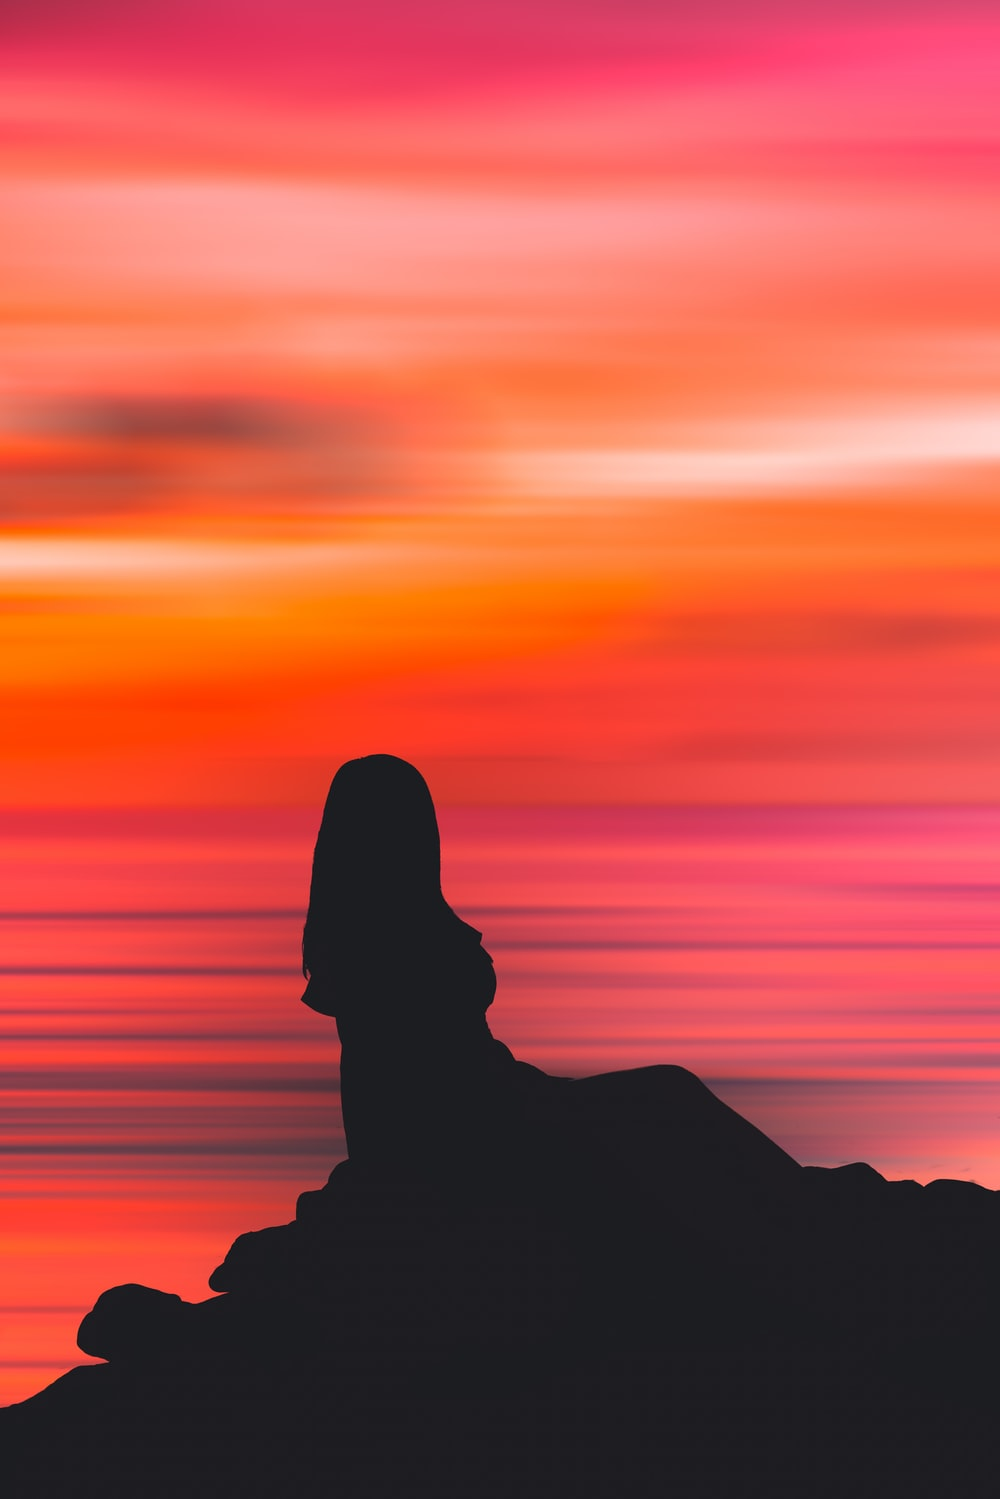 silhouette of person during sunset